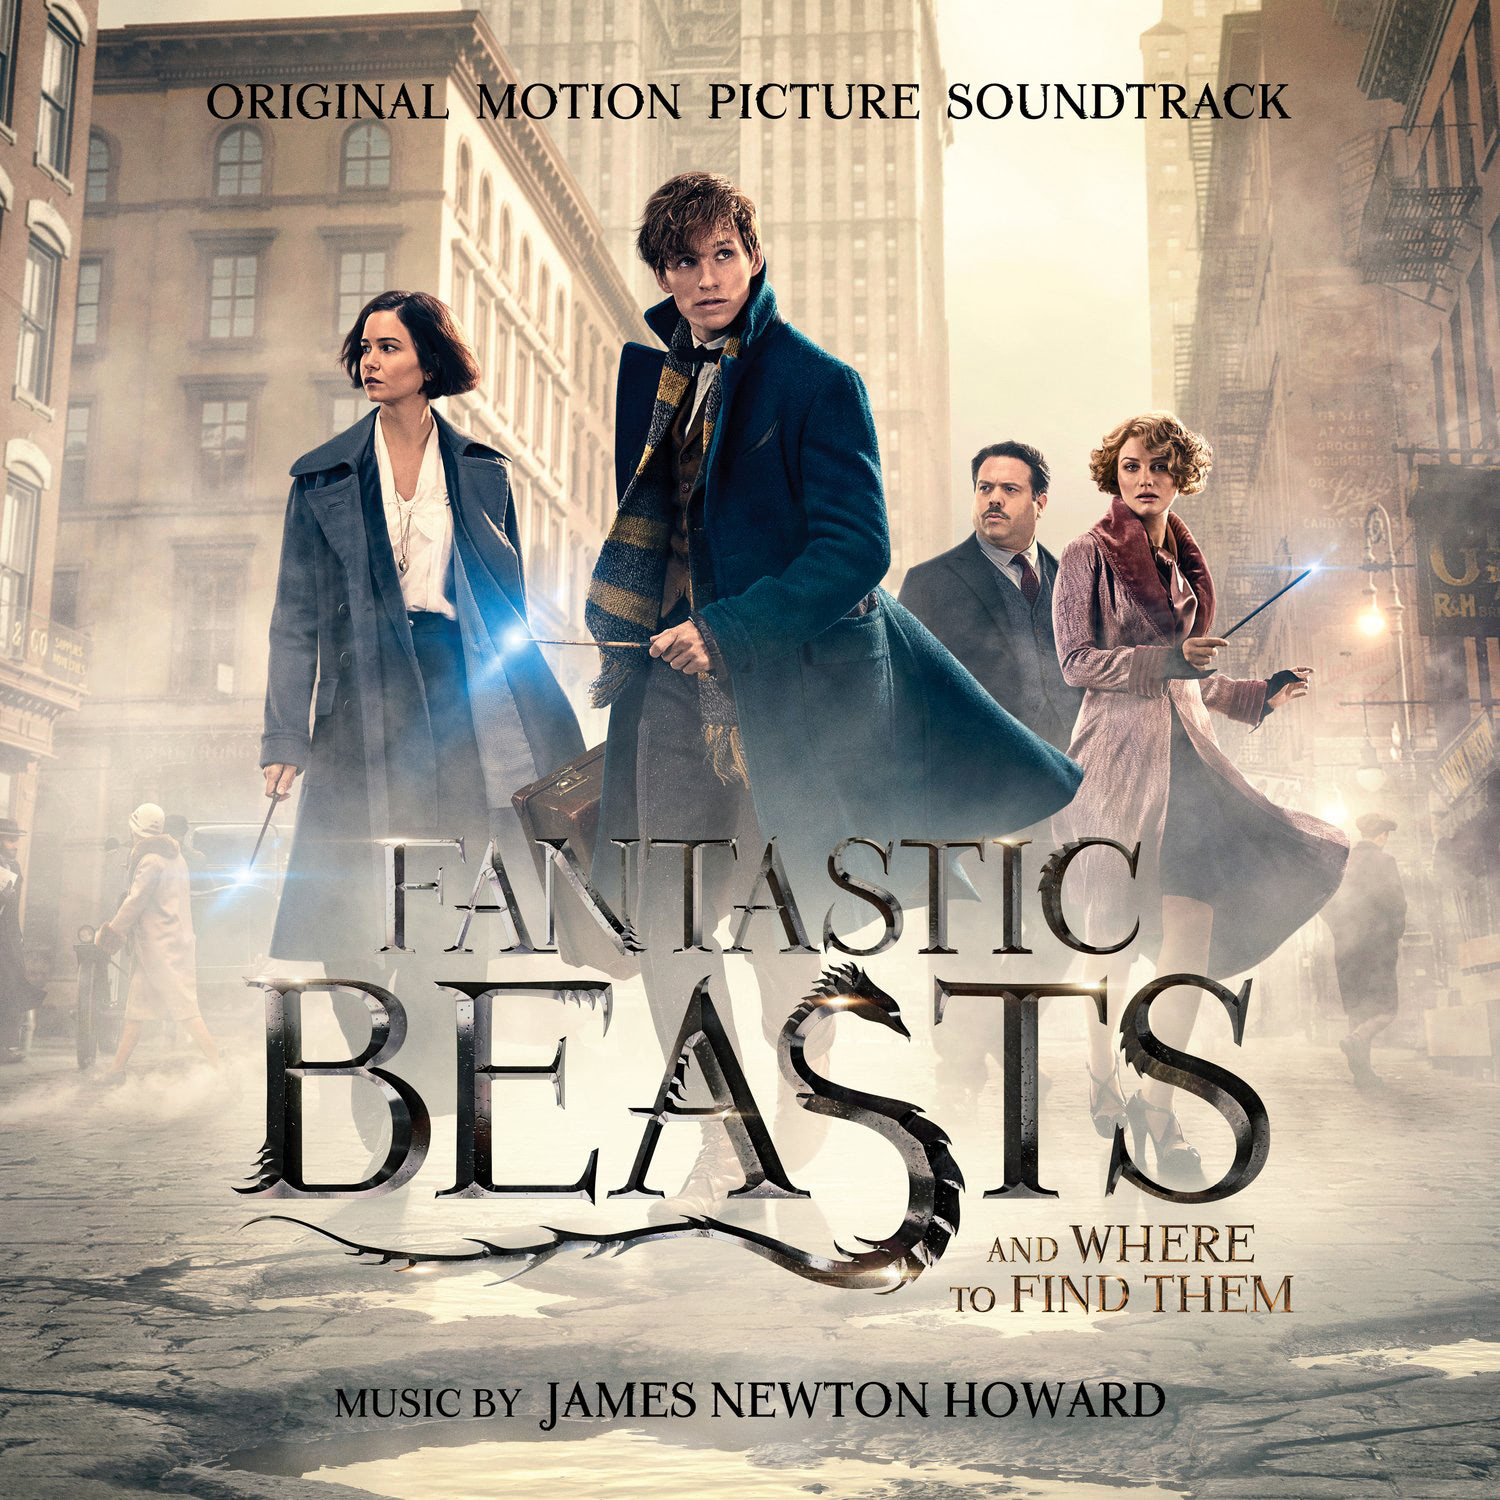 'Fantastic Beasts and Where to Find Them' soundtrack